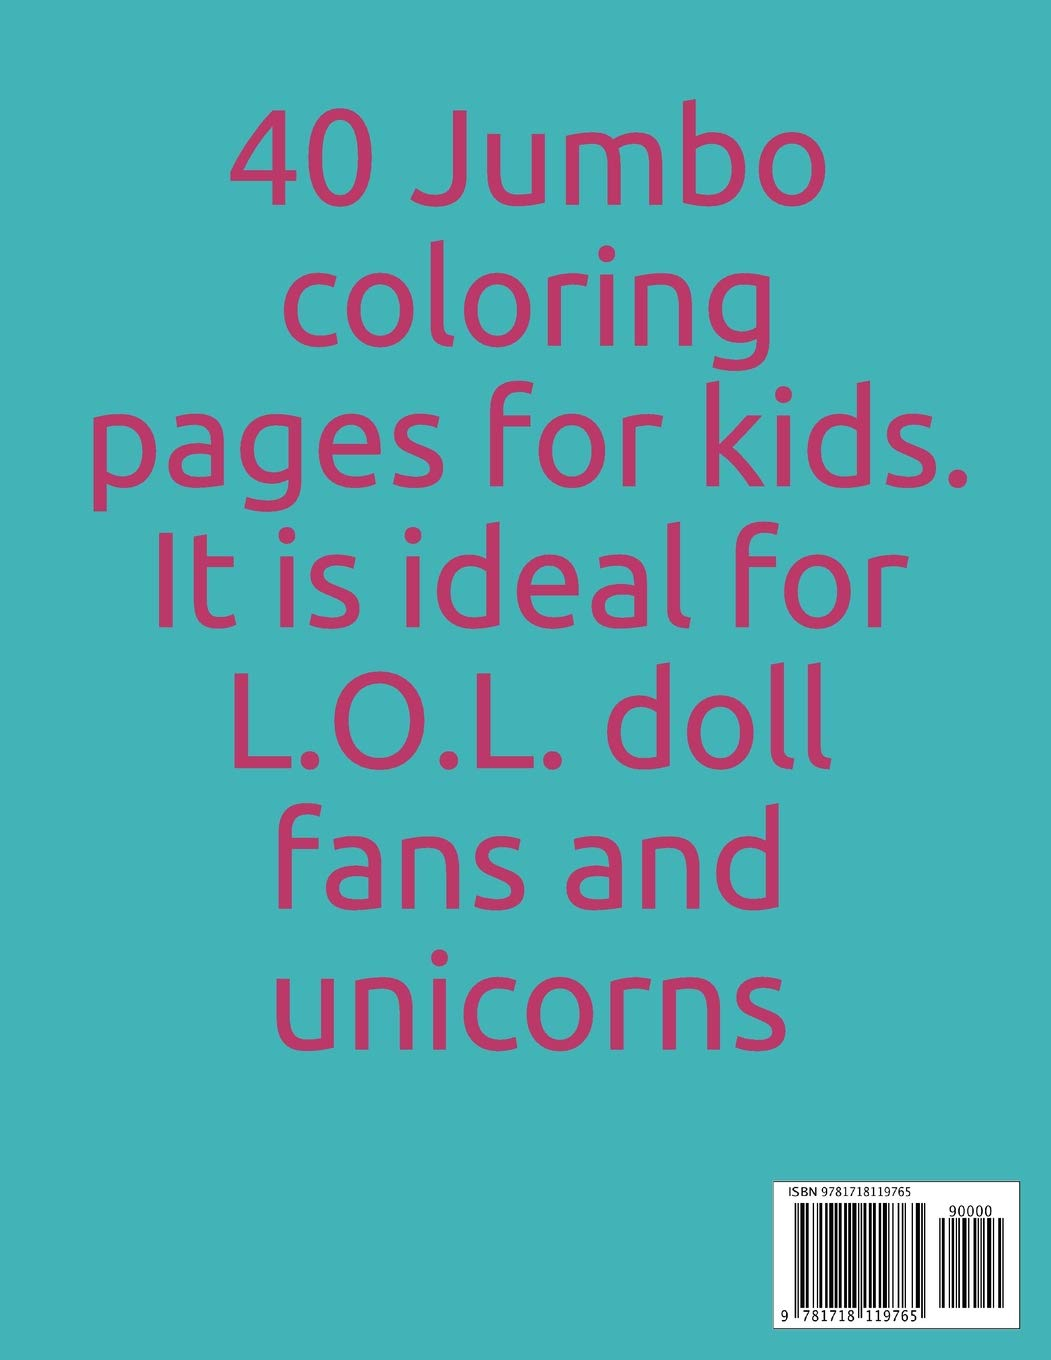 L.O.L. Surprise Dolls in the World of Unicorns: 40 Jumbo coloring pages for kids. It is ideal for L.O.L. doll fans and unicorns: Amazon.es: Merry Books: ...